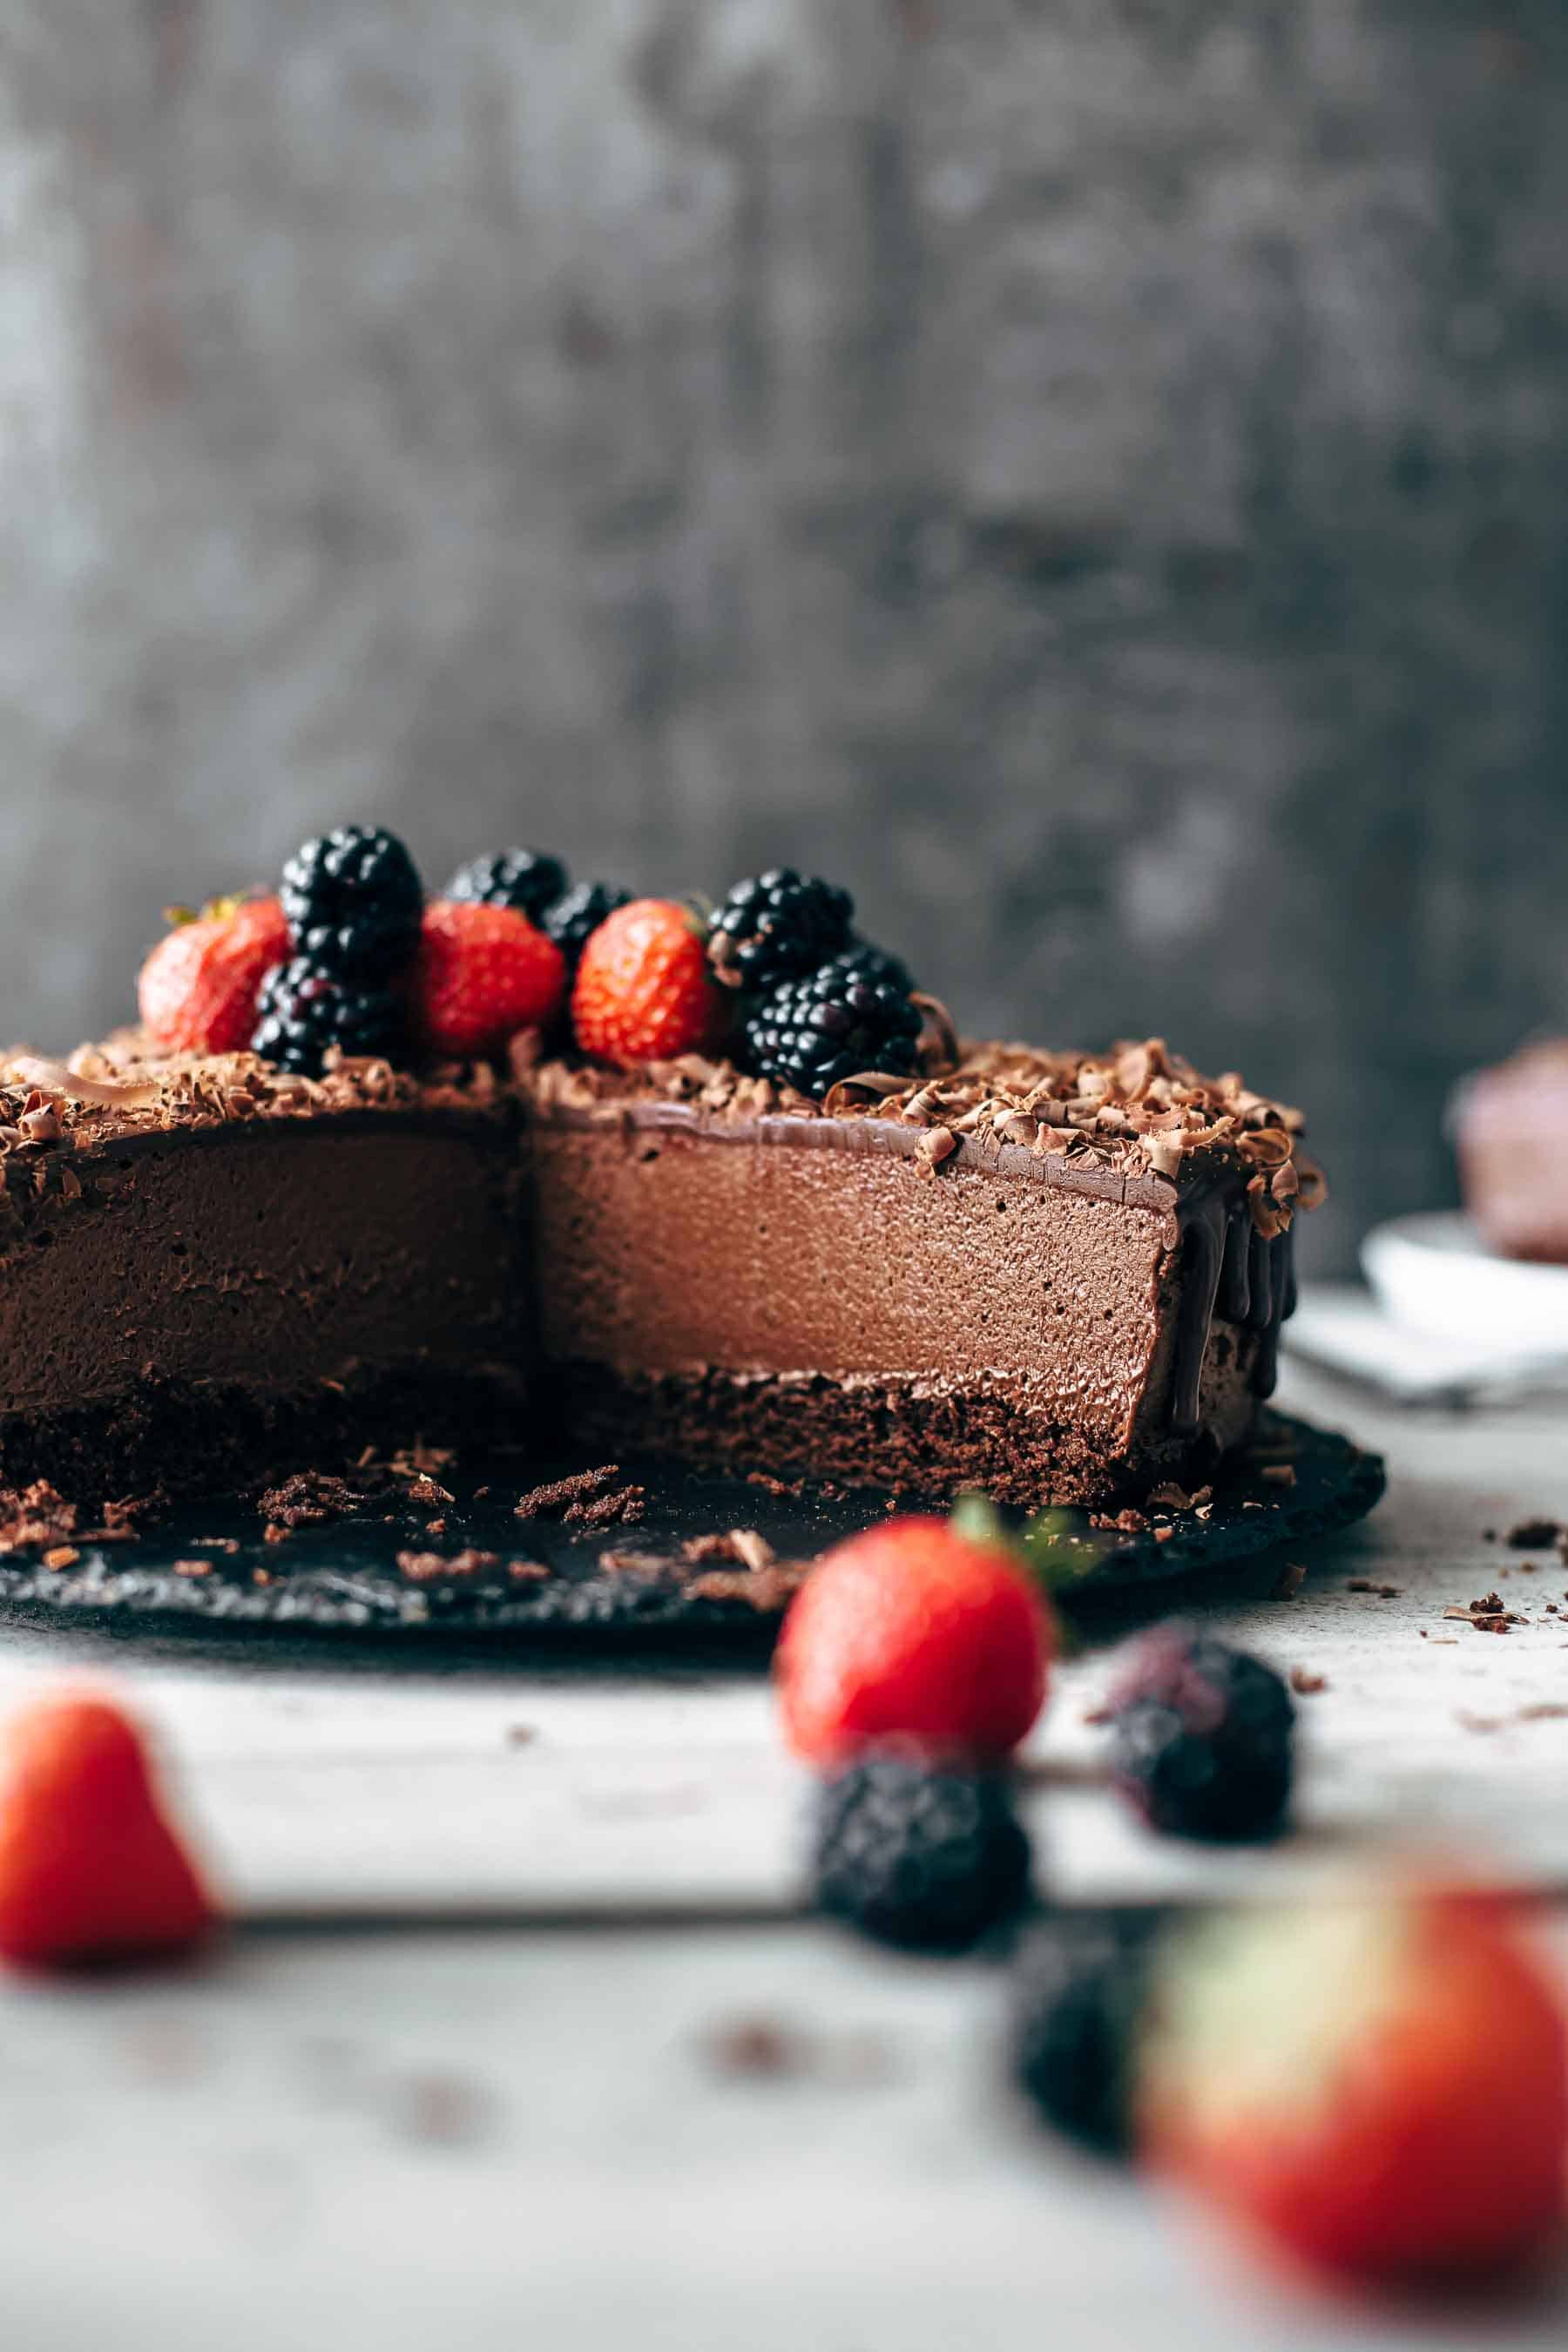 Cut chocolate mousse cake with berries on top on black serving plate